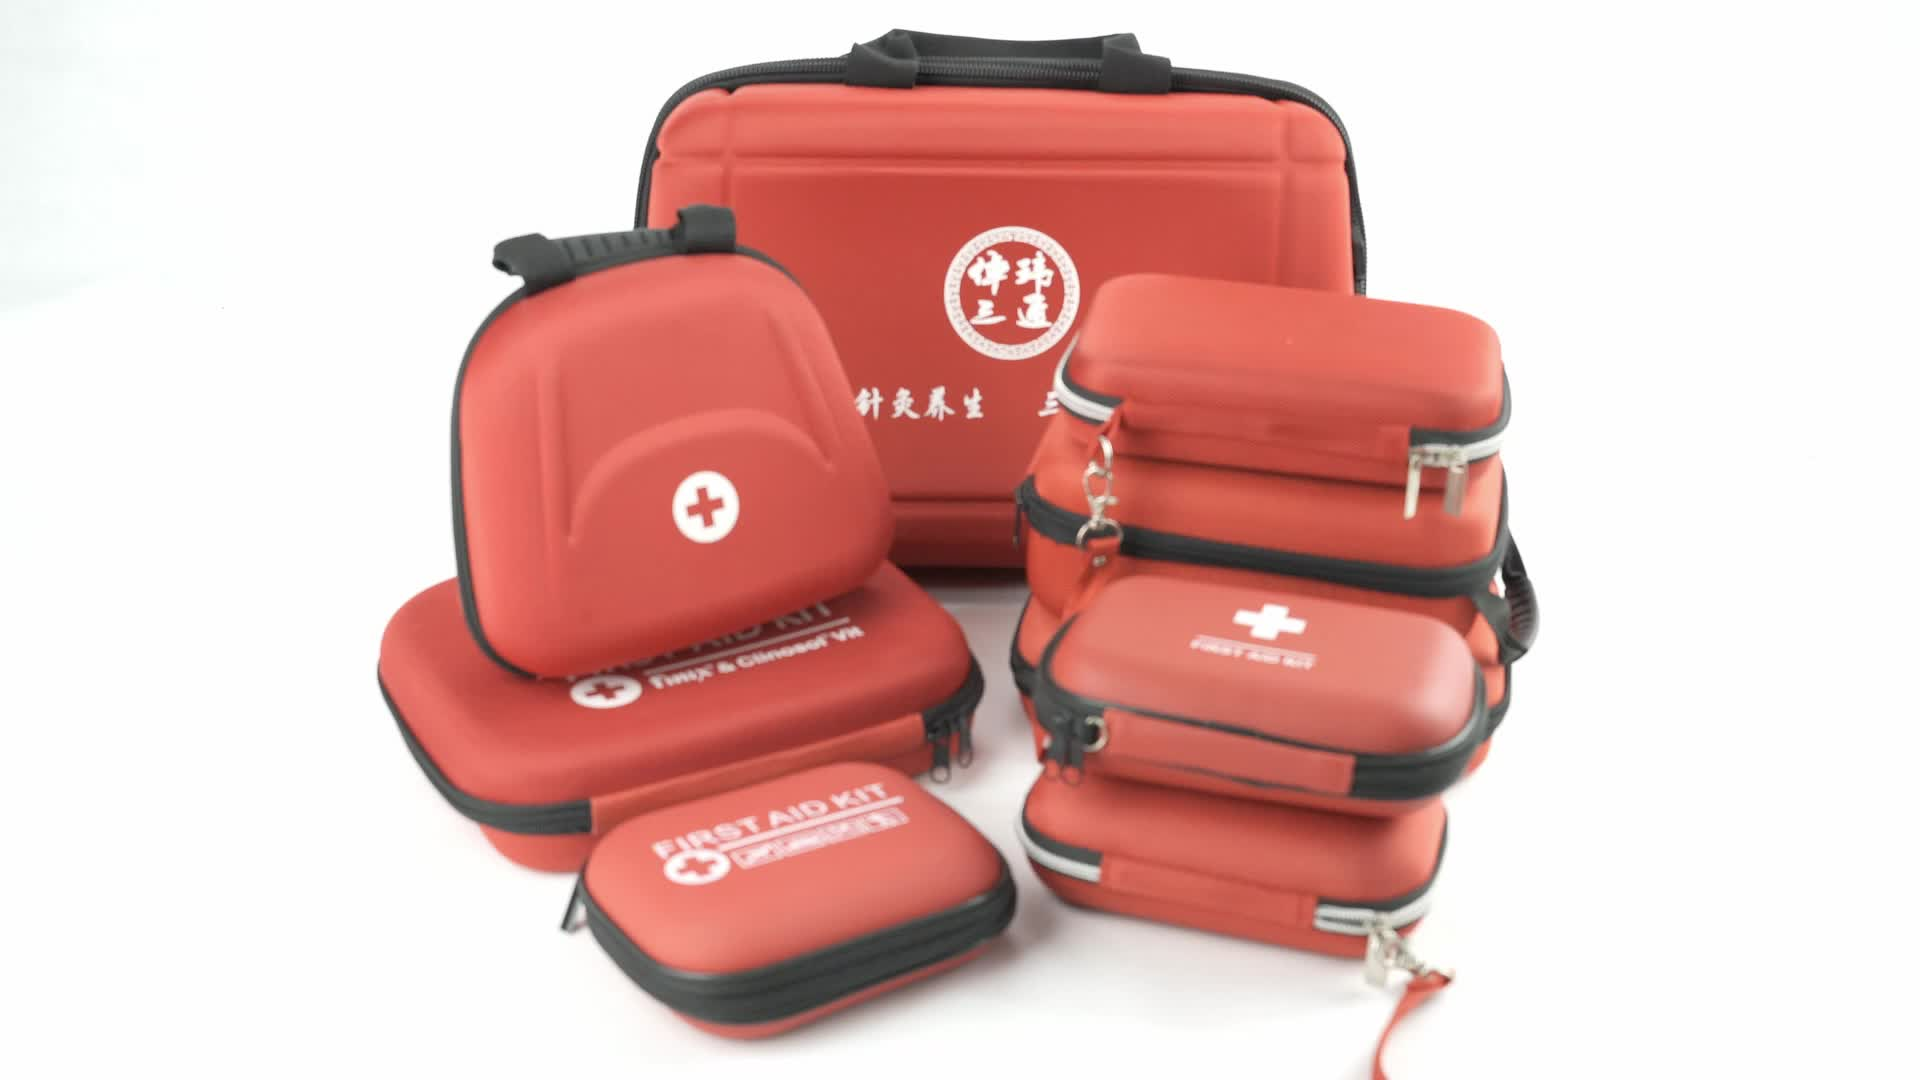 Health Care Home Equipment Medical Travel first aid kit bags box